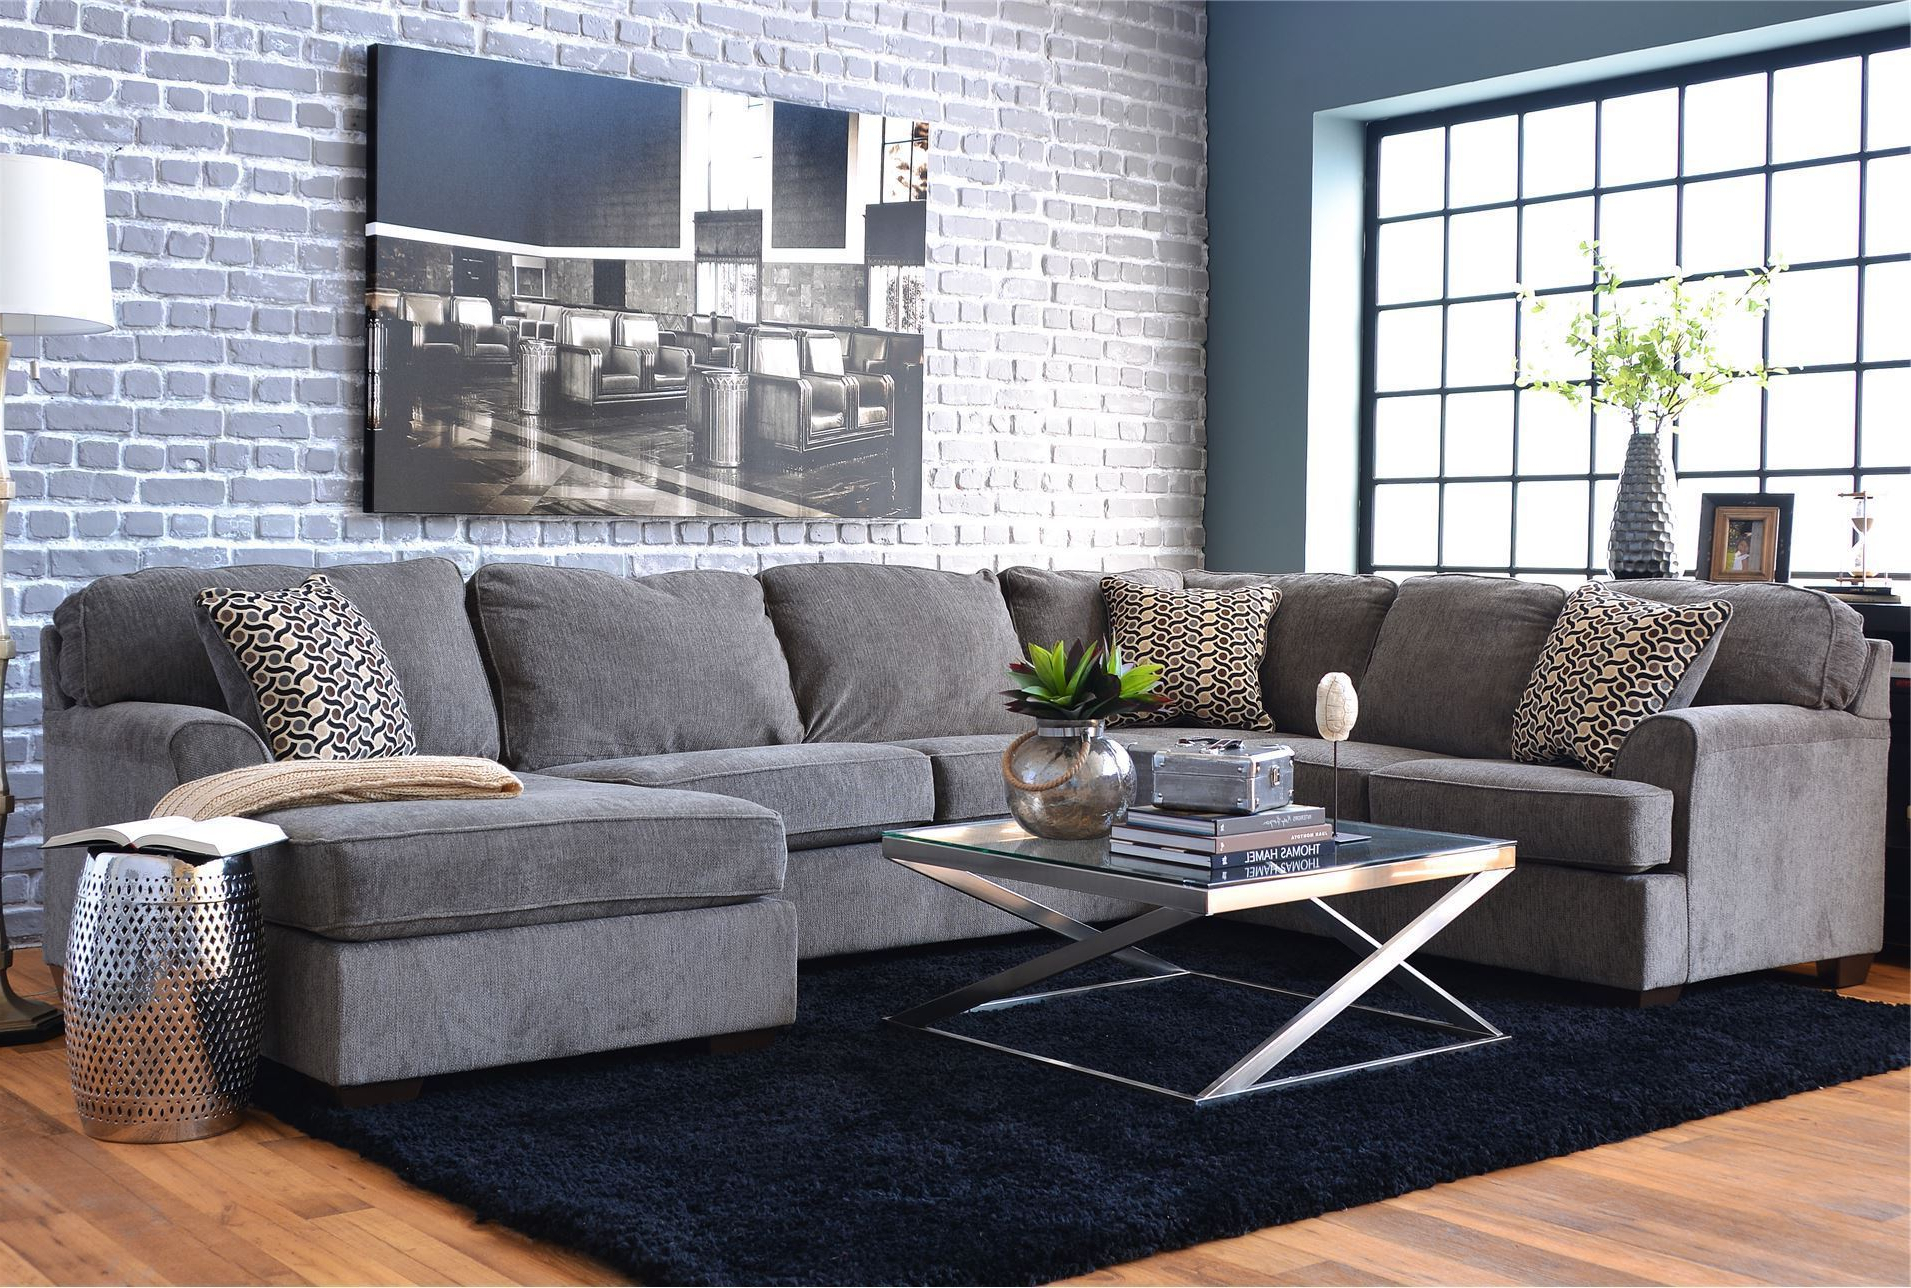 Sectional Sofa 3 Piece With Chaise Amazon Com Case Andrea Milano For Recent Evan 2 Piece Sectionals With Raf Chaise (View 15 of 20)